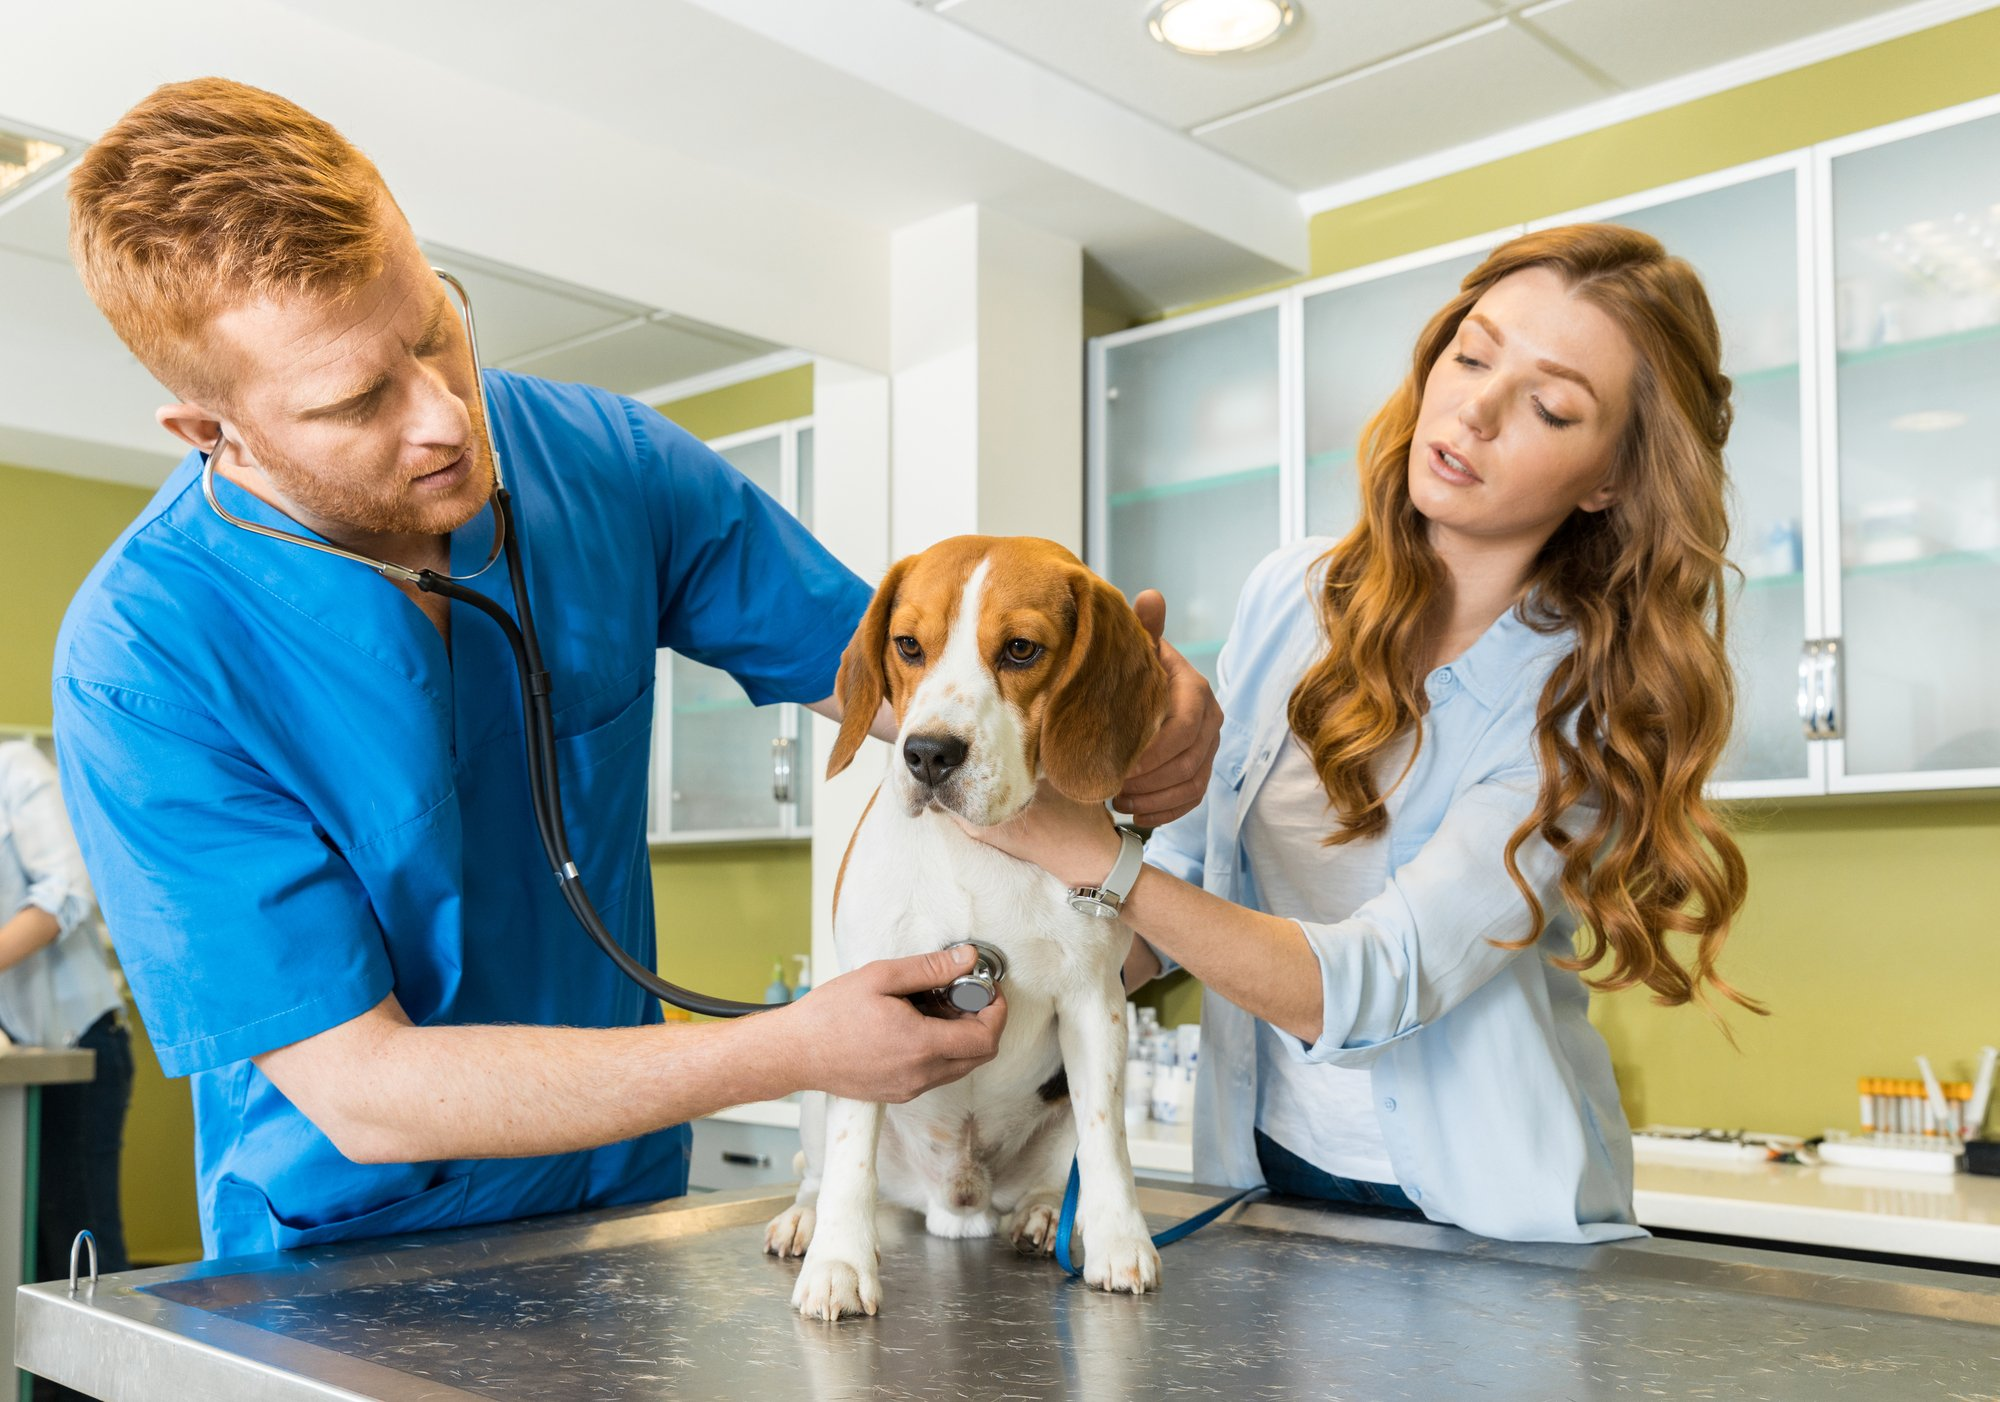 Beagle dog getting checked out by veterinarian with woman owner watching.